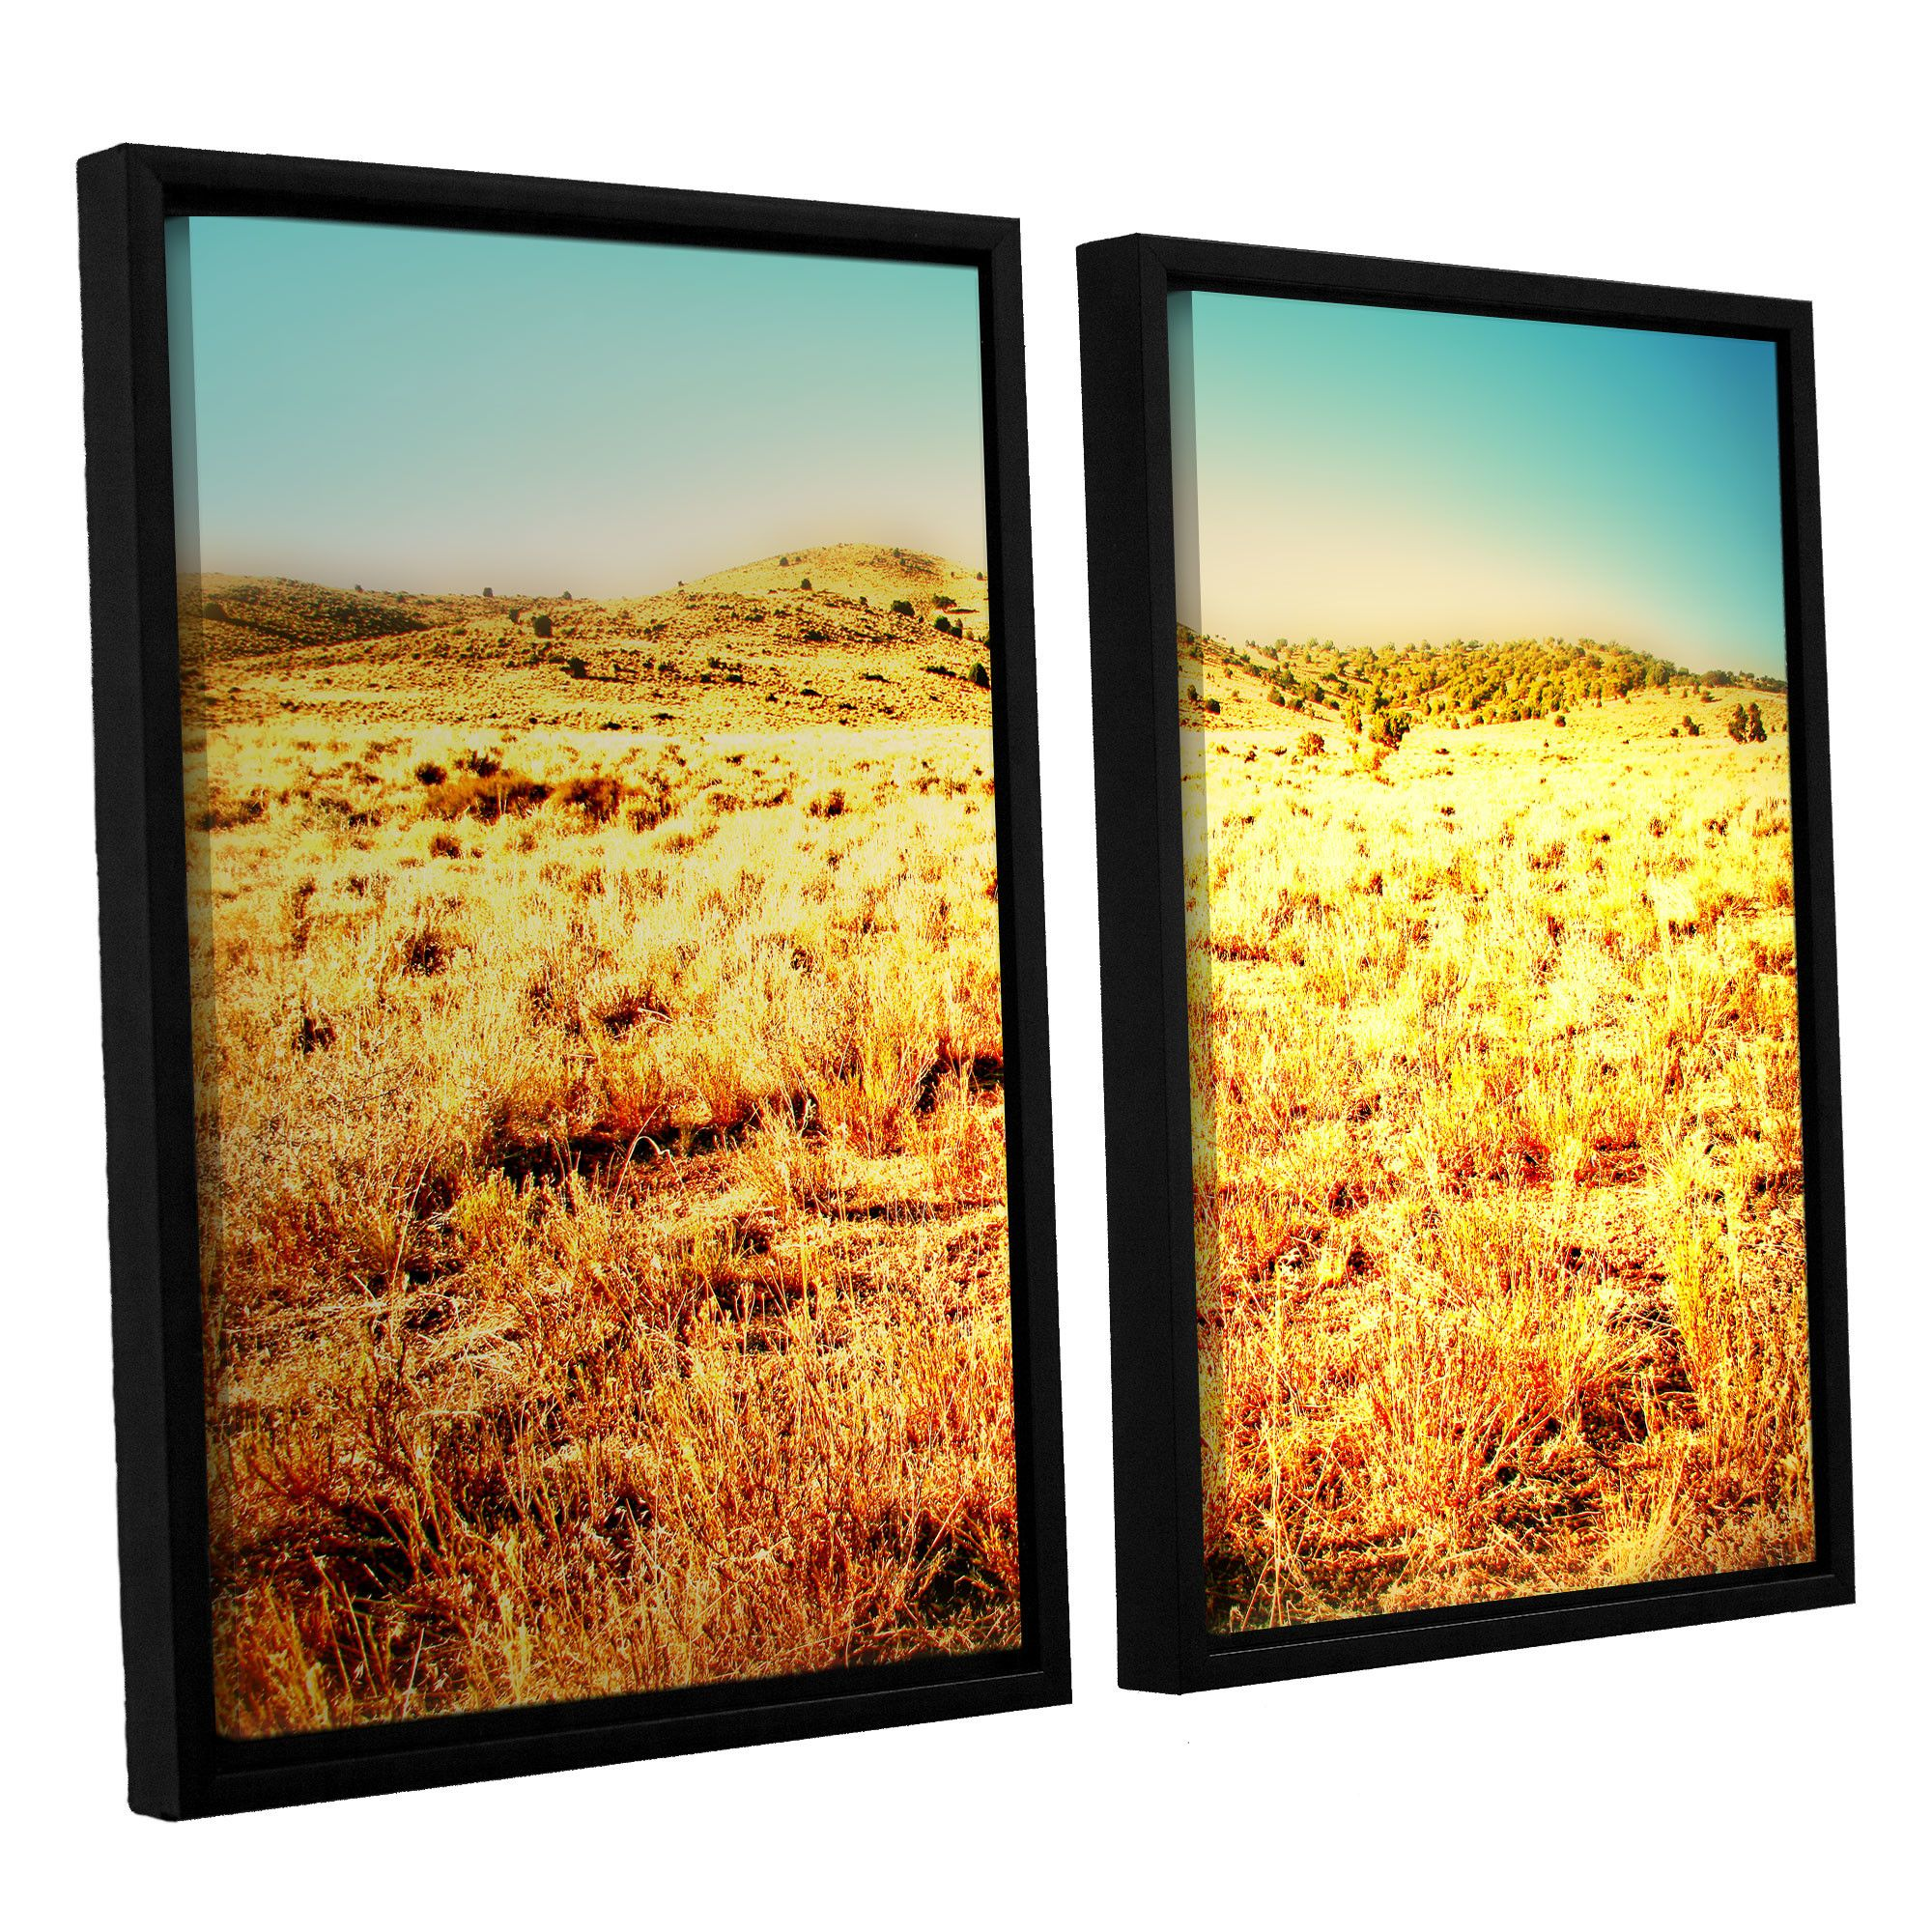 Take A Seat by Mark Ross 2 Piece Framed Photographic Print Set ...